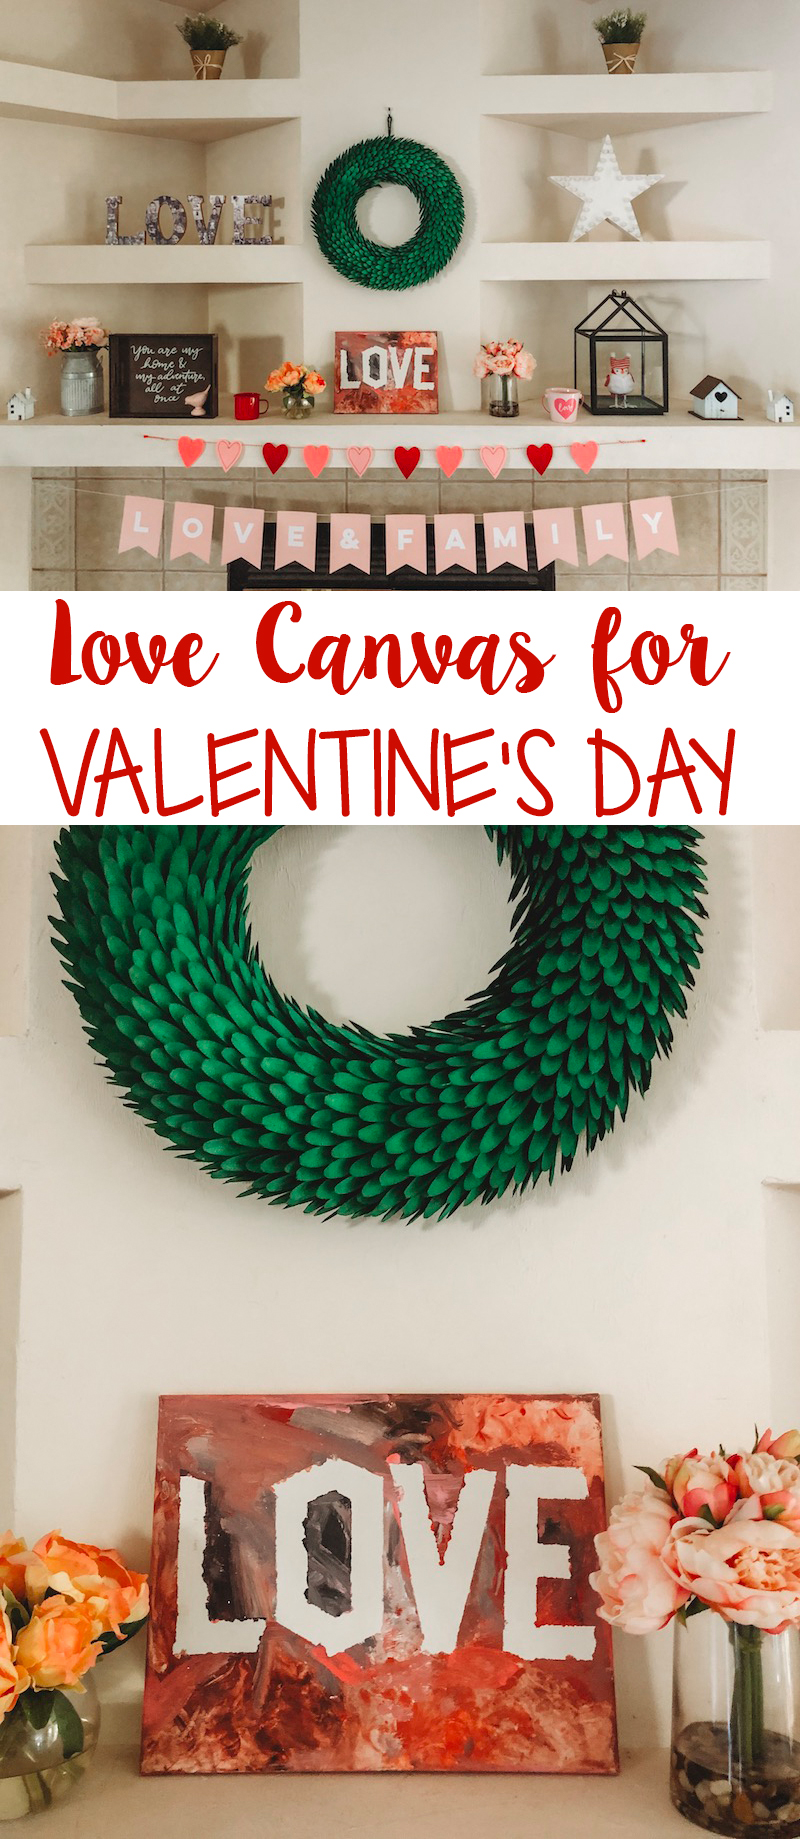 Love Canvas Craft for Valentine's Day